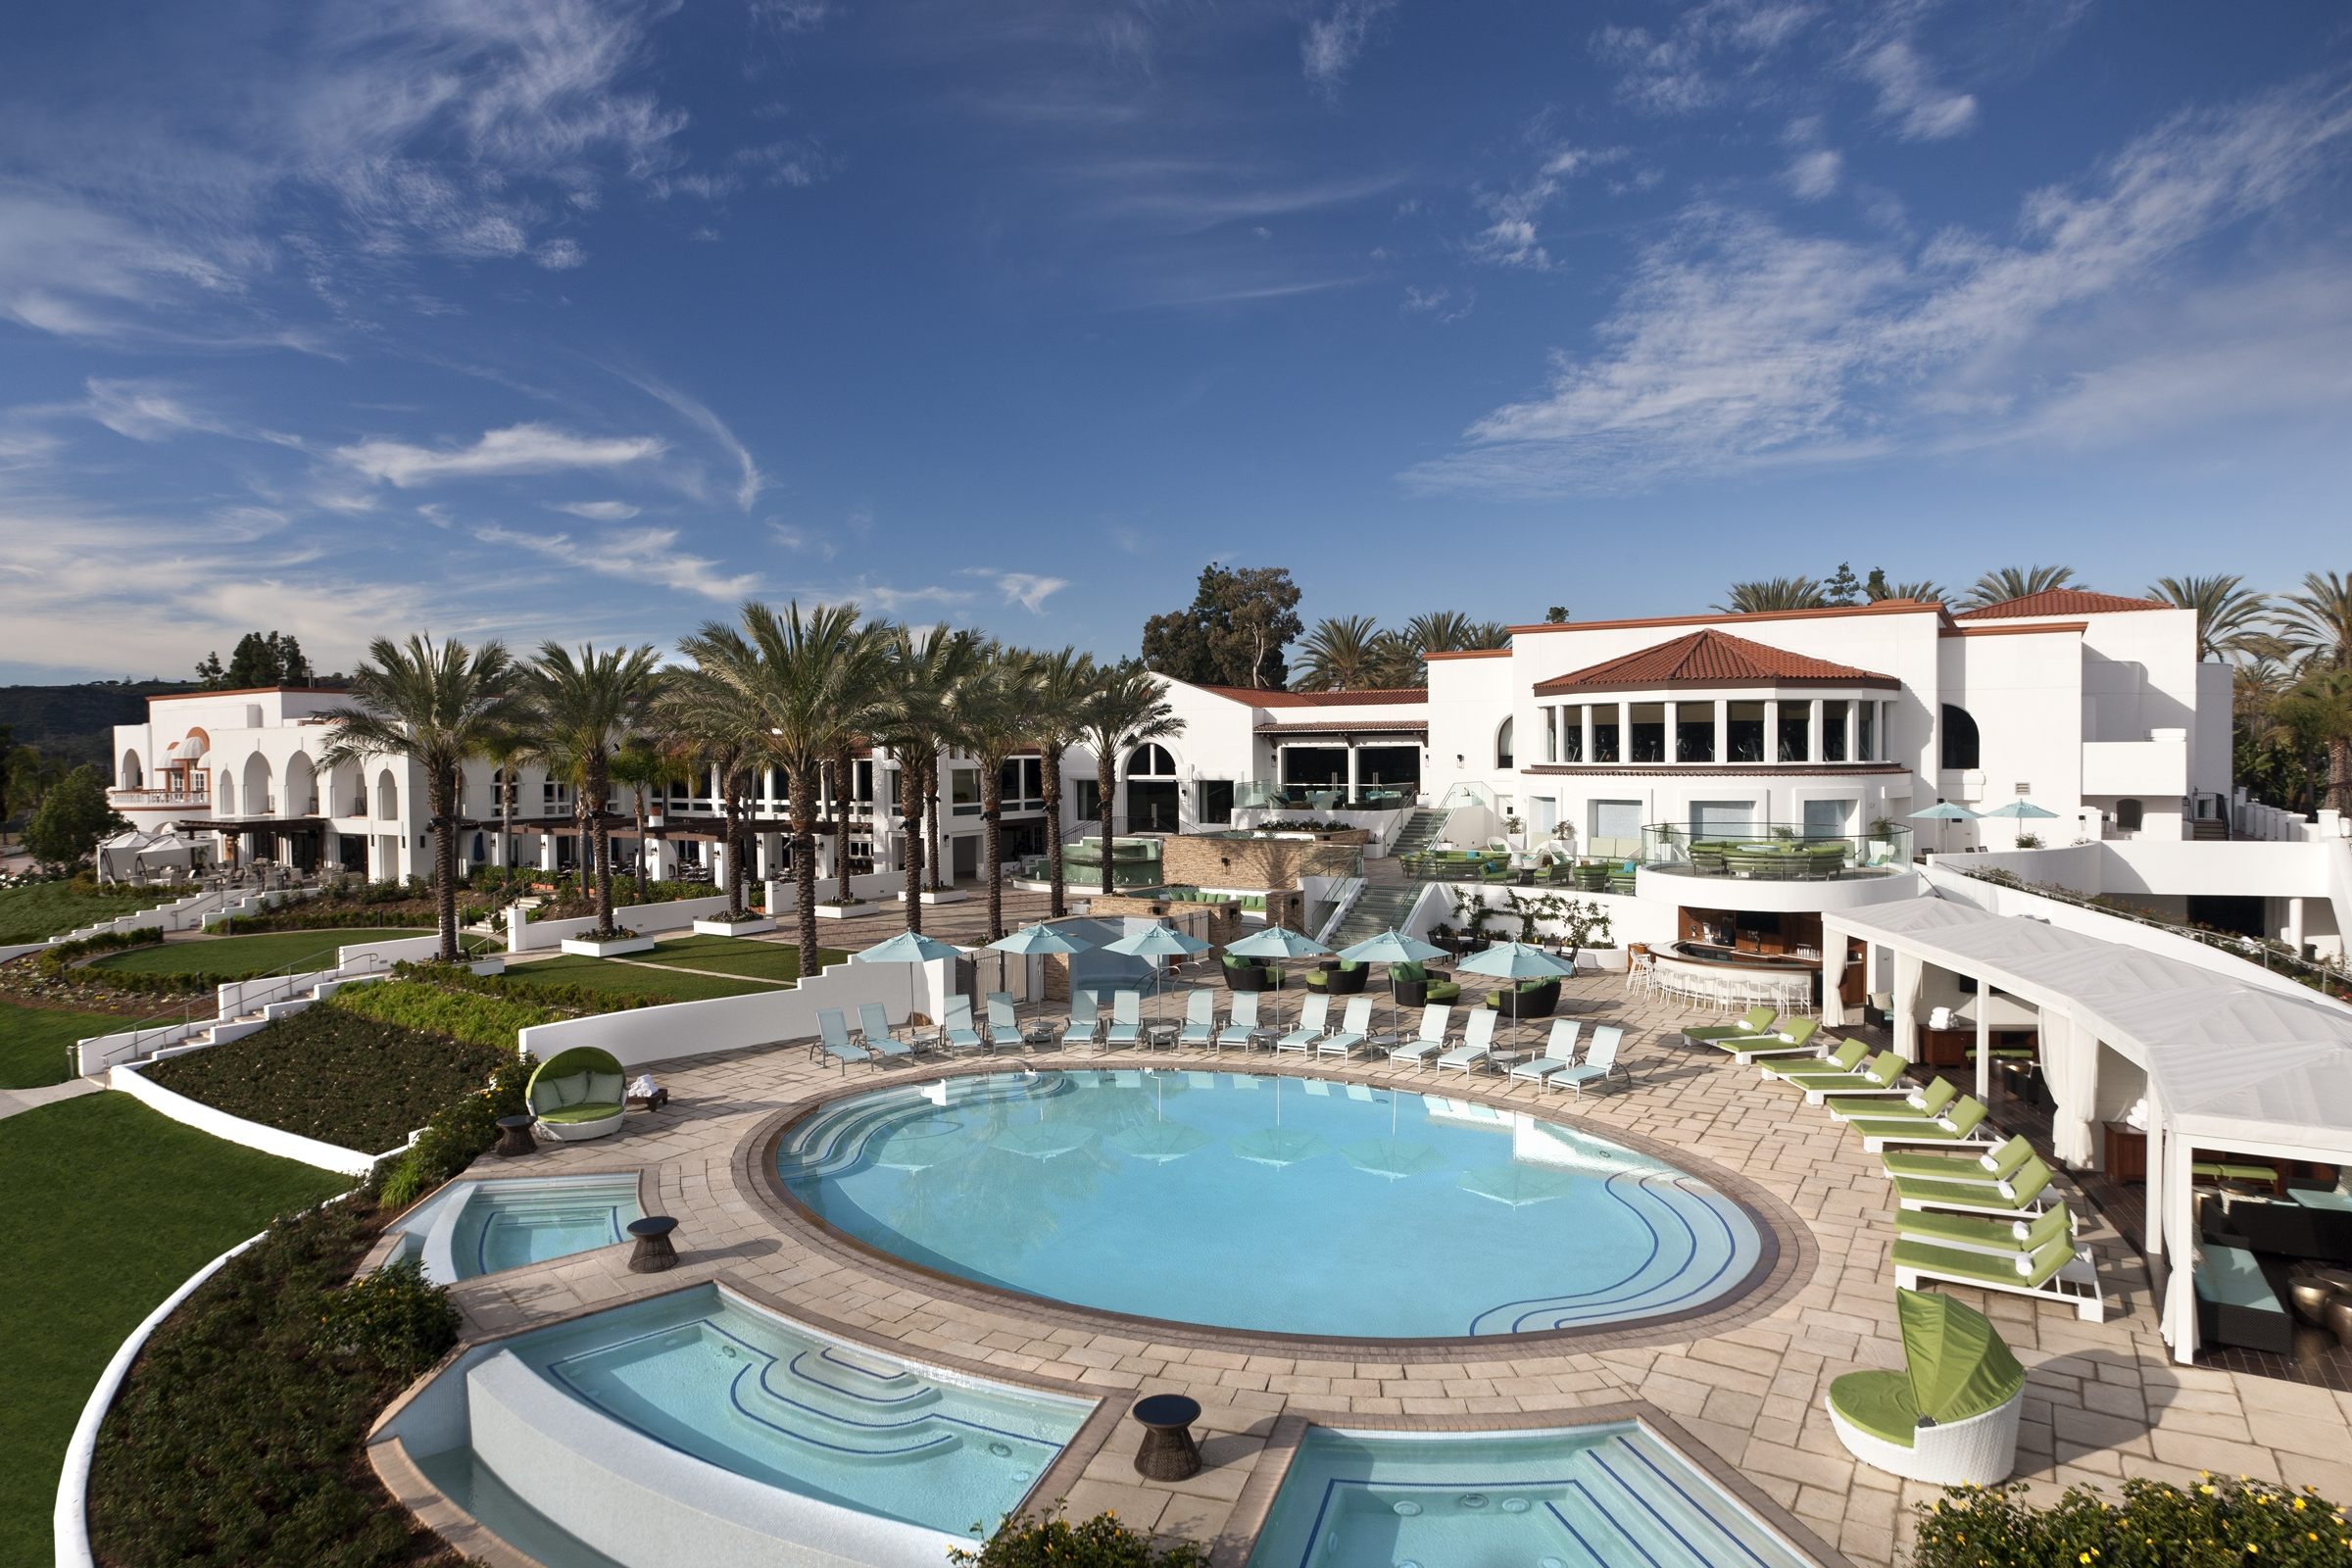 Omni La Costa Tennis and Golf Vacation